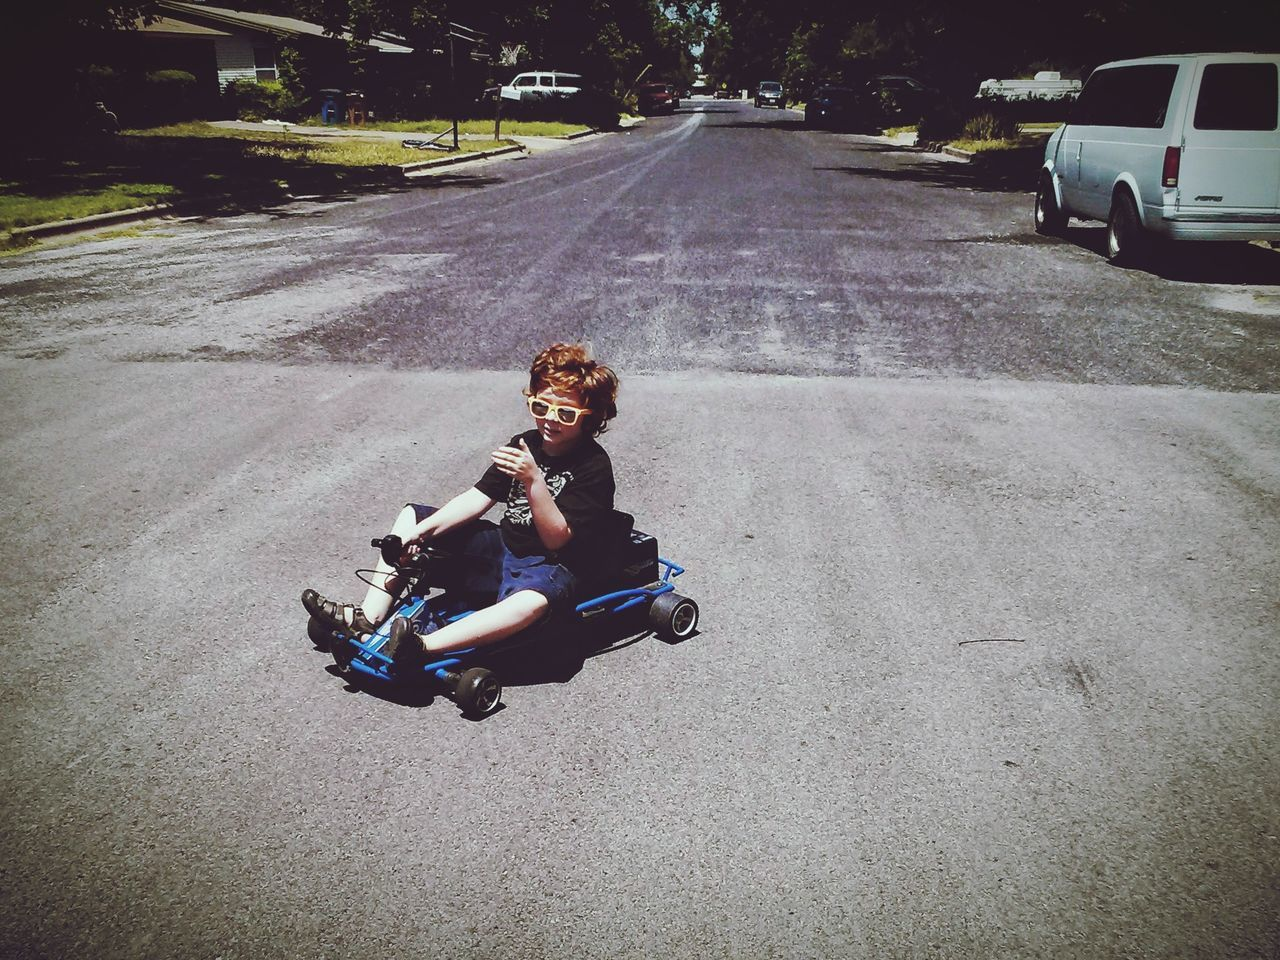 Live For The Story Go Carts Go Kart Red Head Boy Austin Texas Summer Memories 🌄 Sunglasses Road Boy's Fun Son Boys And Their Toys Let's Go. Together.